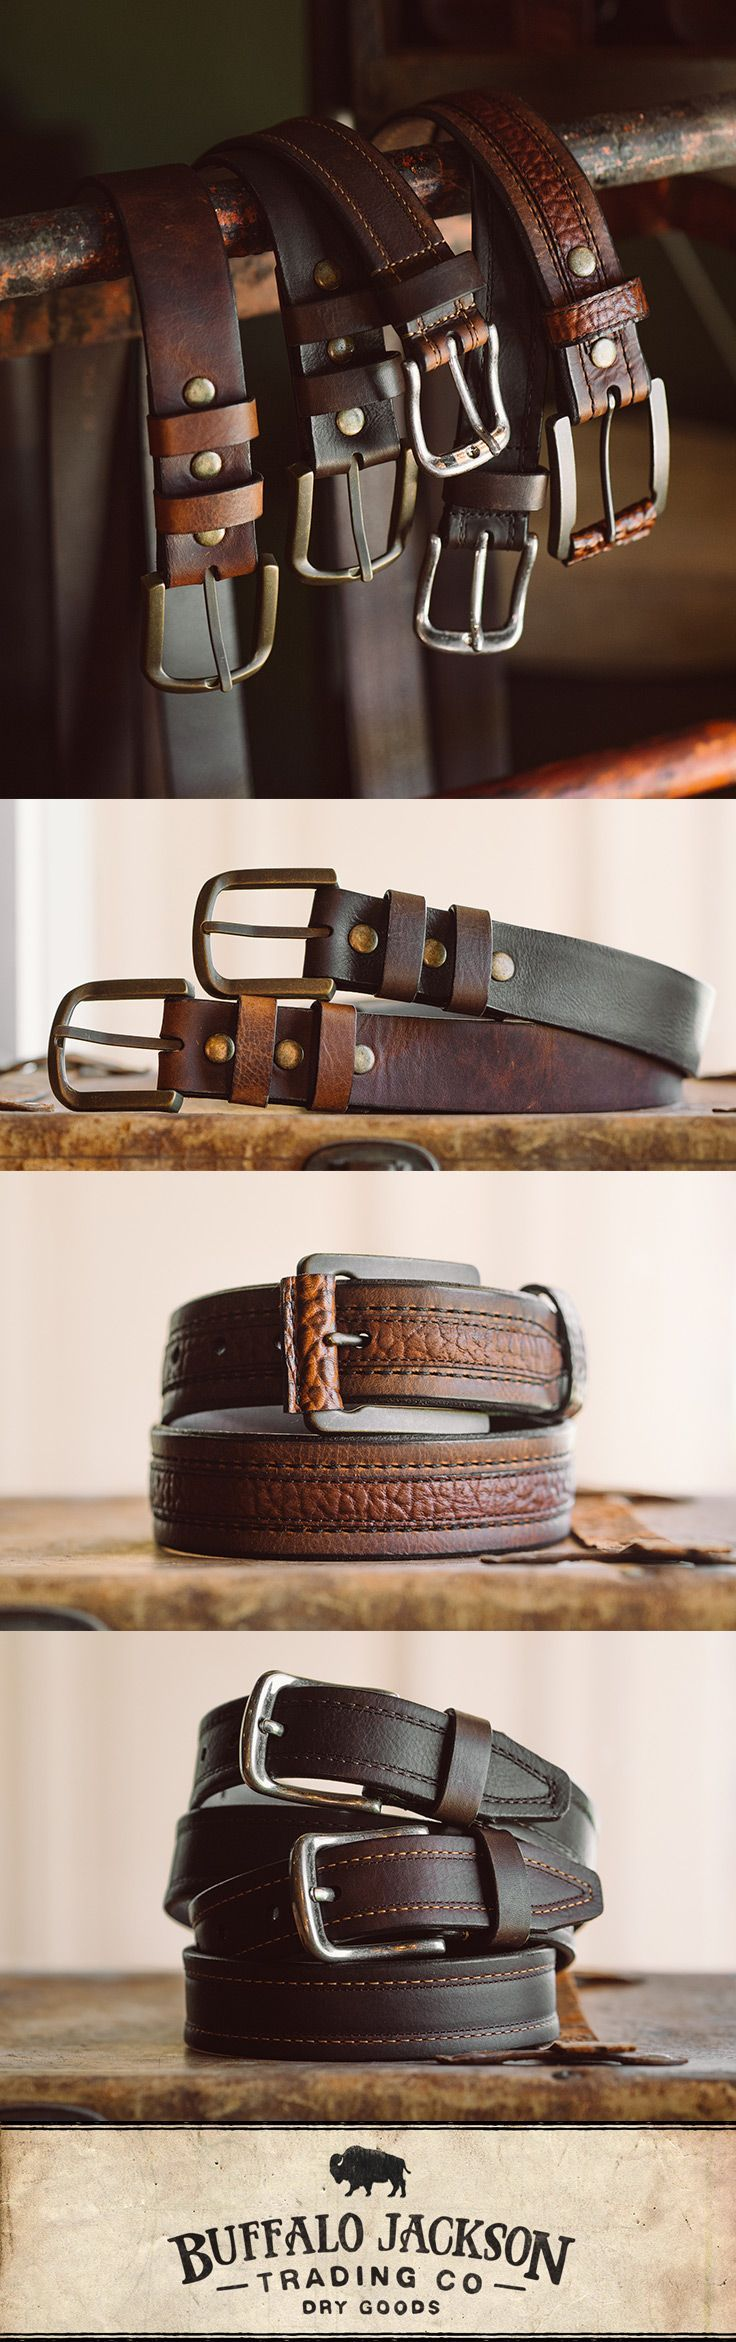 Impressive collection of brown leather belts for men. Whether your fashion sense leans vintage style or western, these simple, rugged men's belts are a must-have for any business or casual outfit.